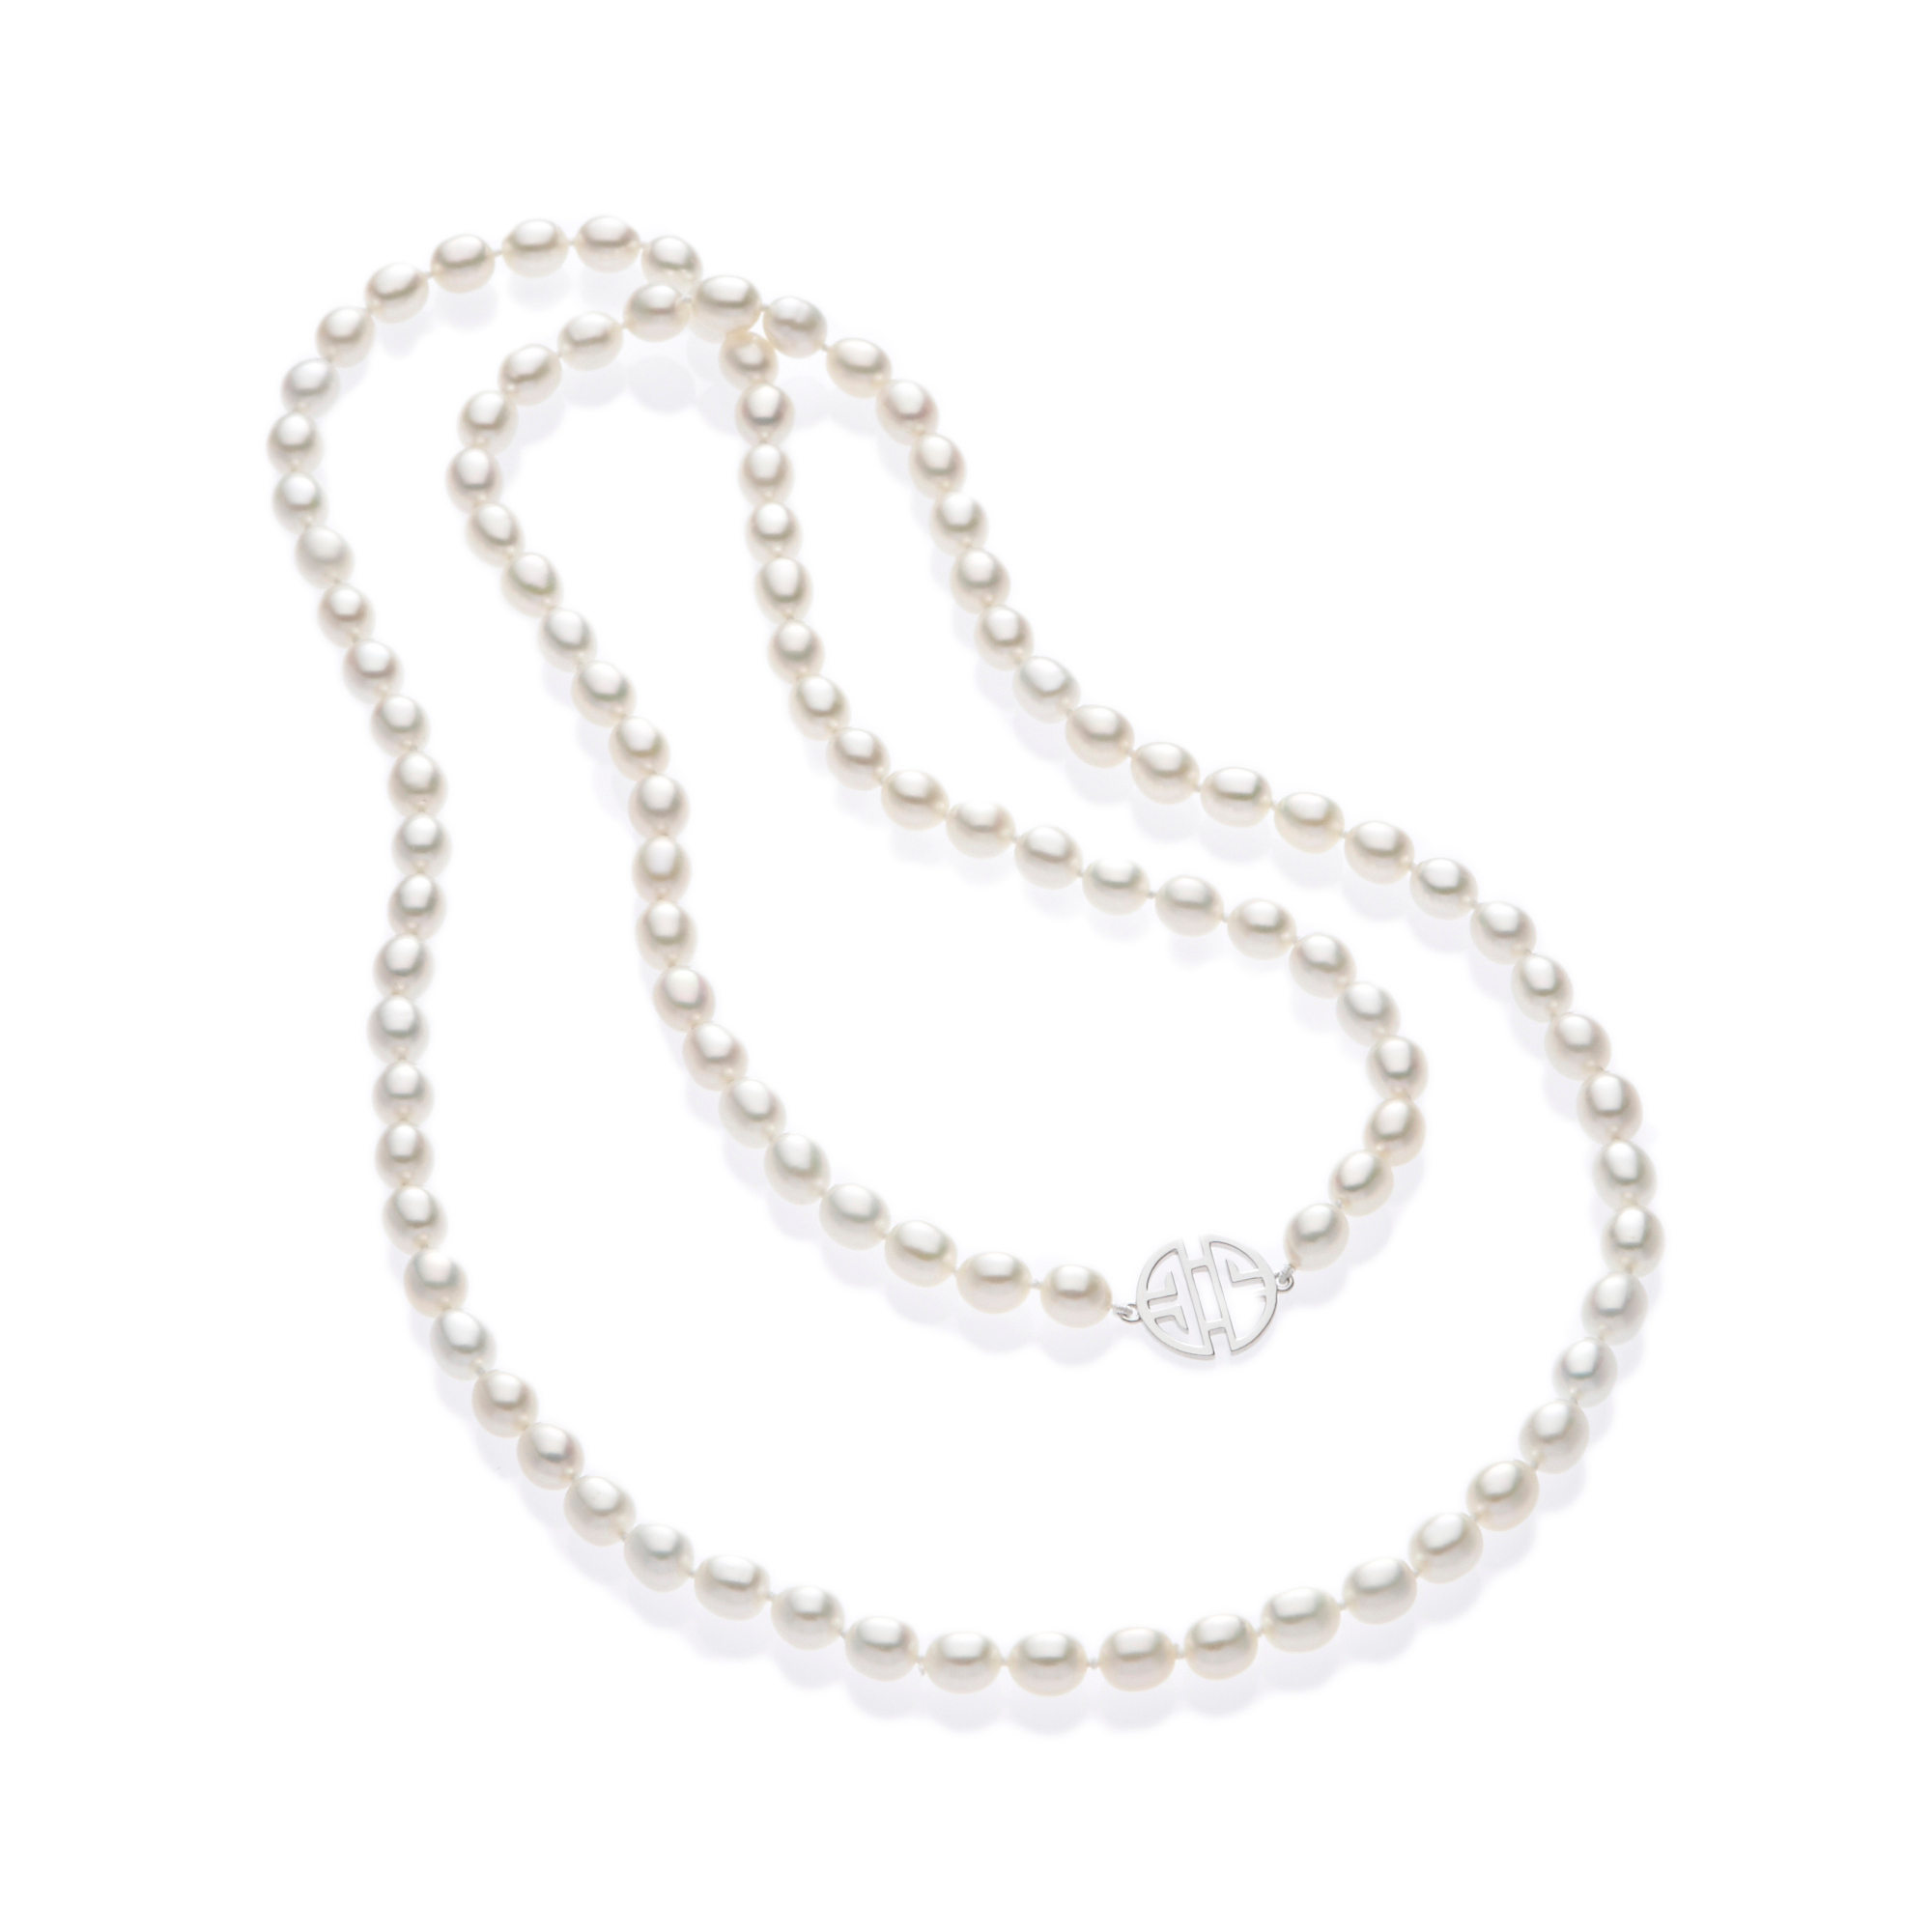 Gump's Shou and Freshwater Cultured Pearl Rope Necklace